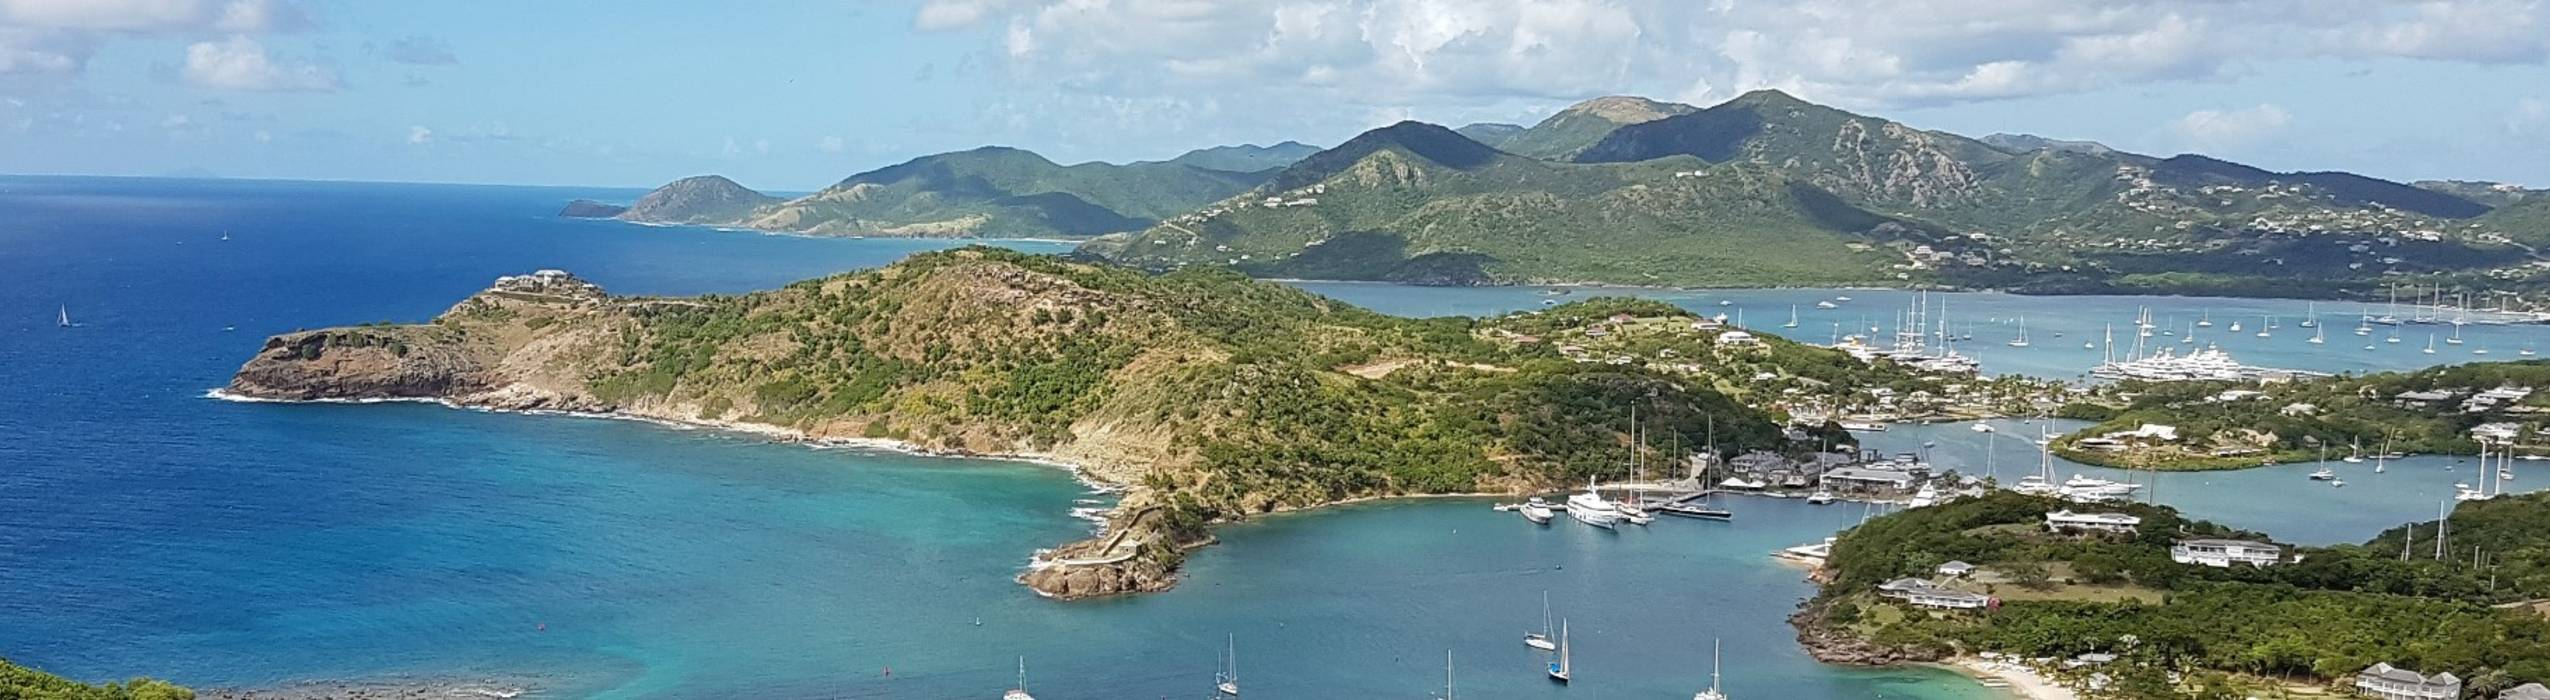 Yachtcharter Leeward Islands